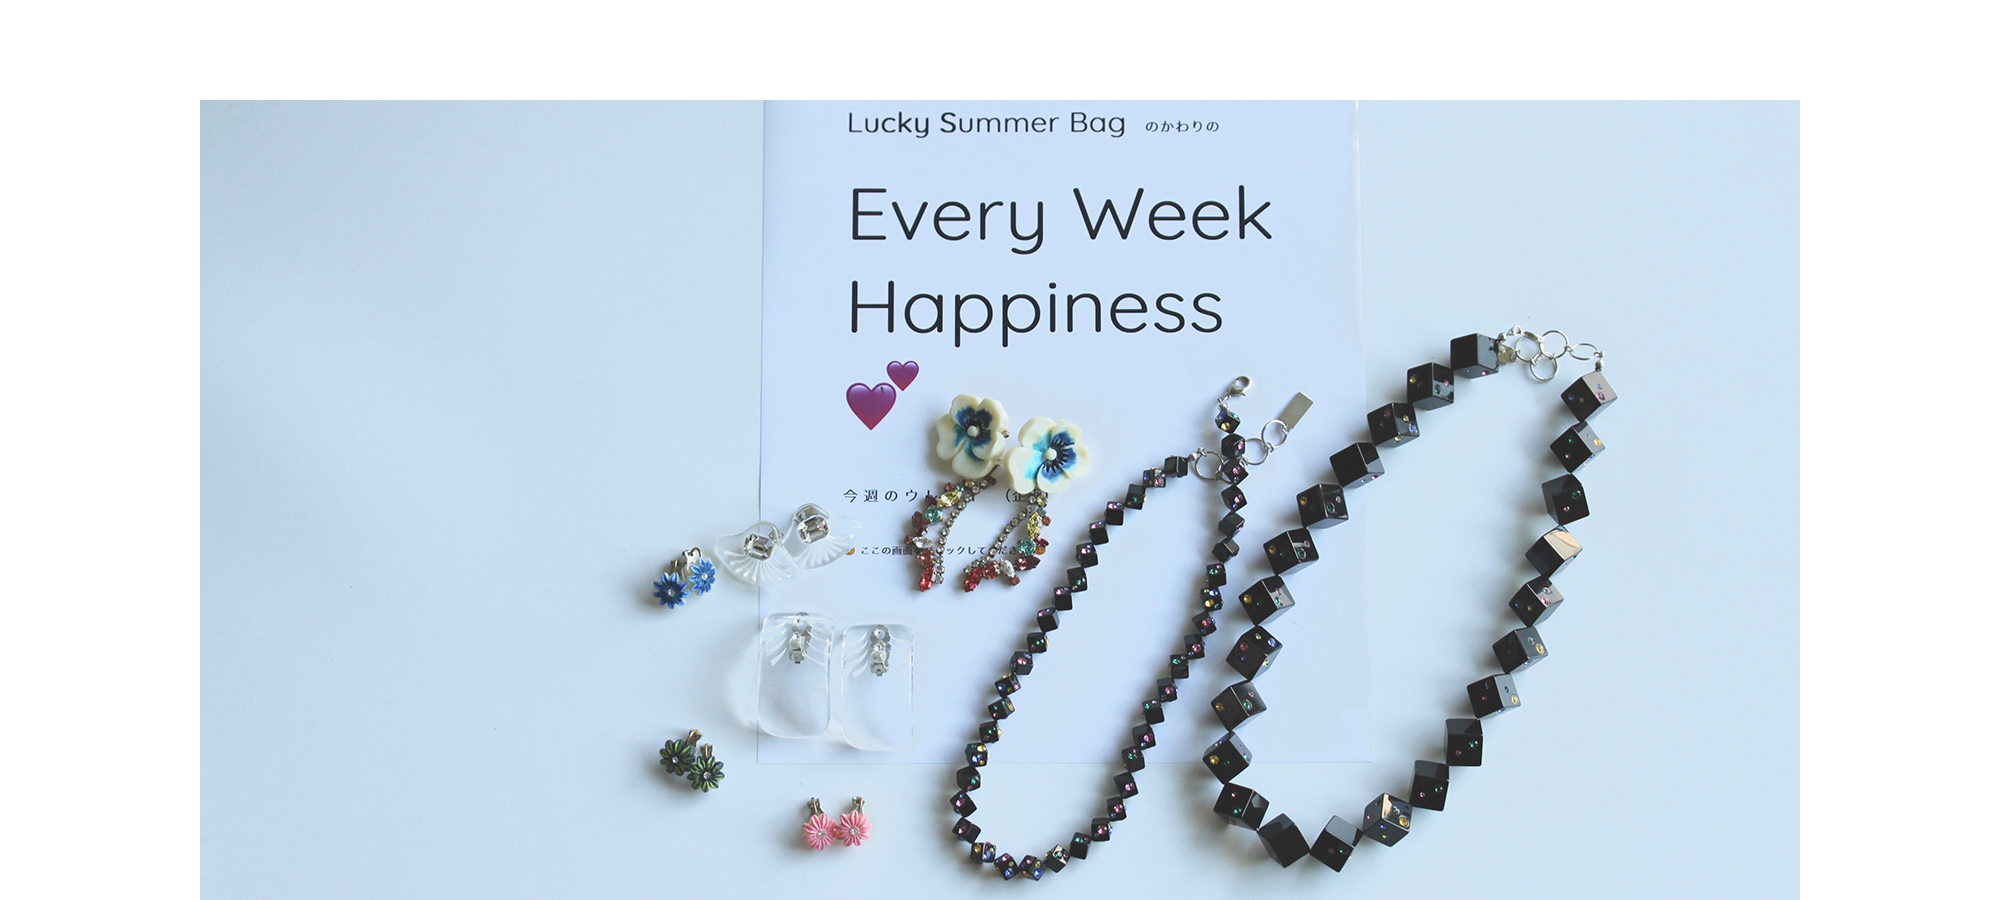 Every Week Happiness